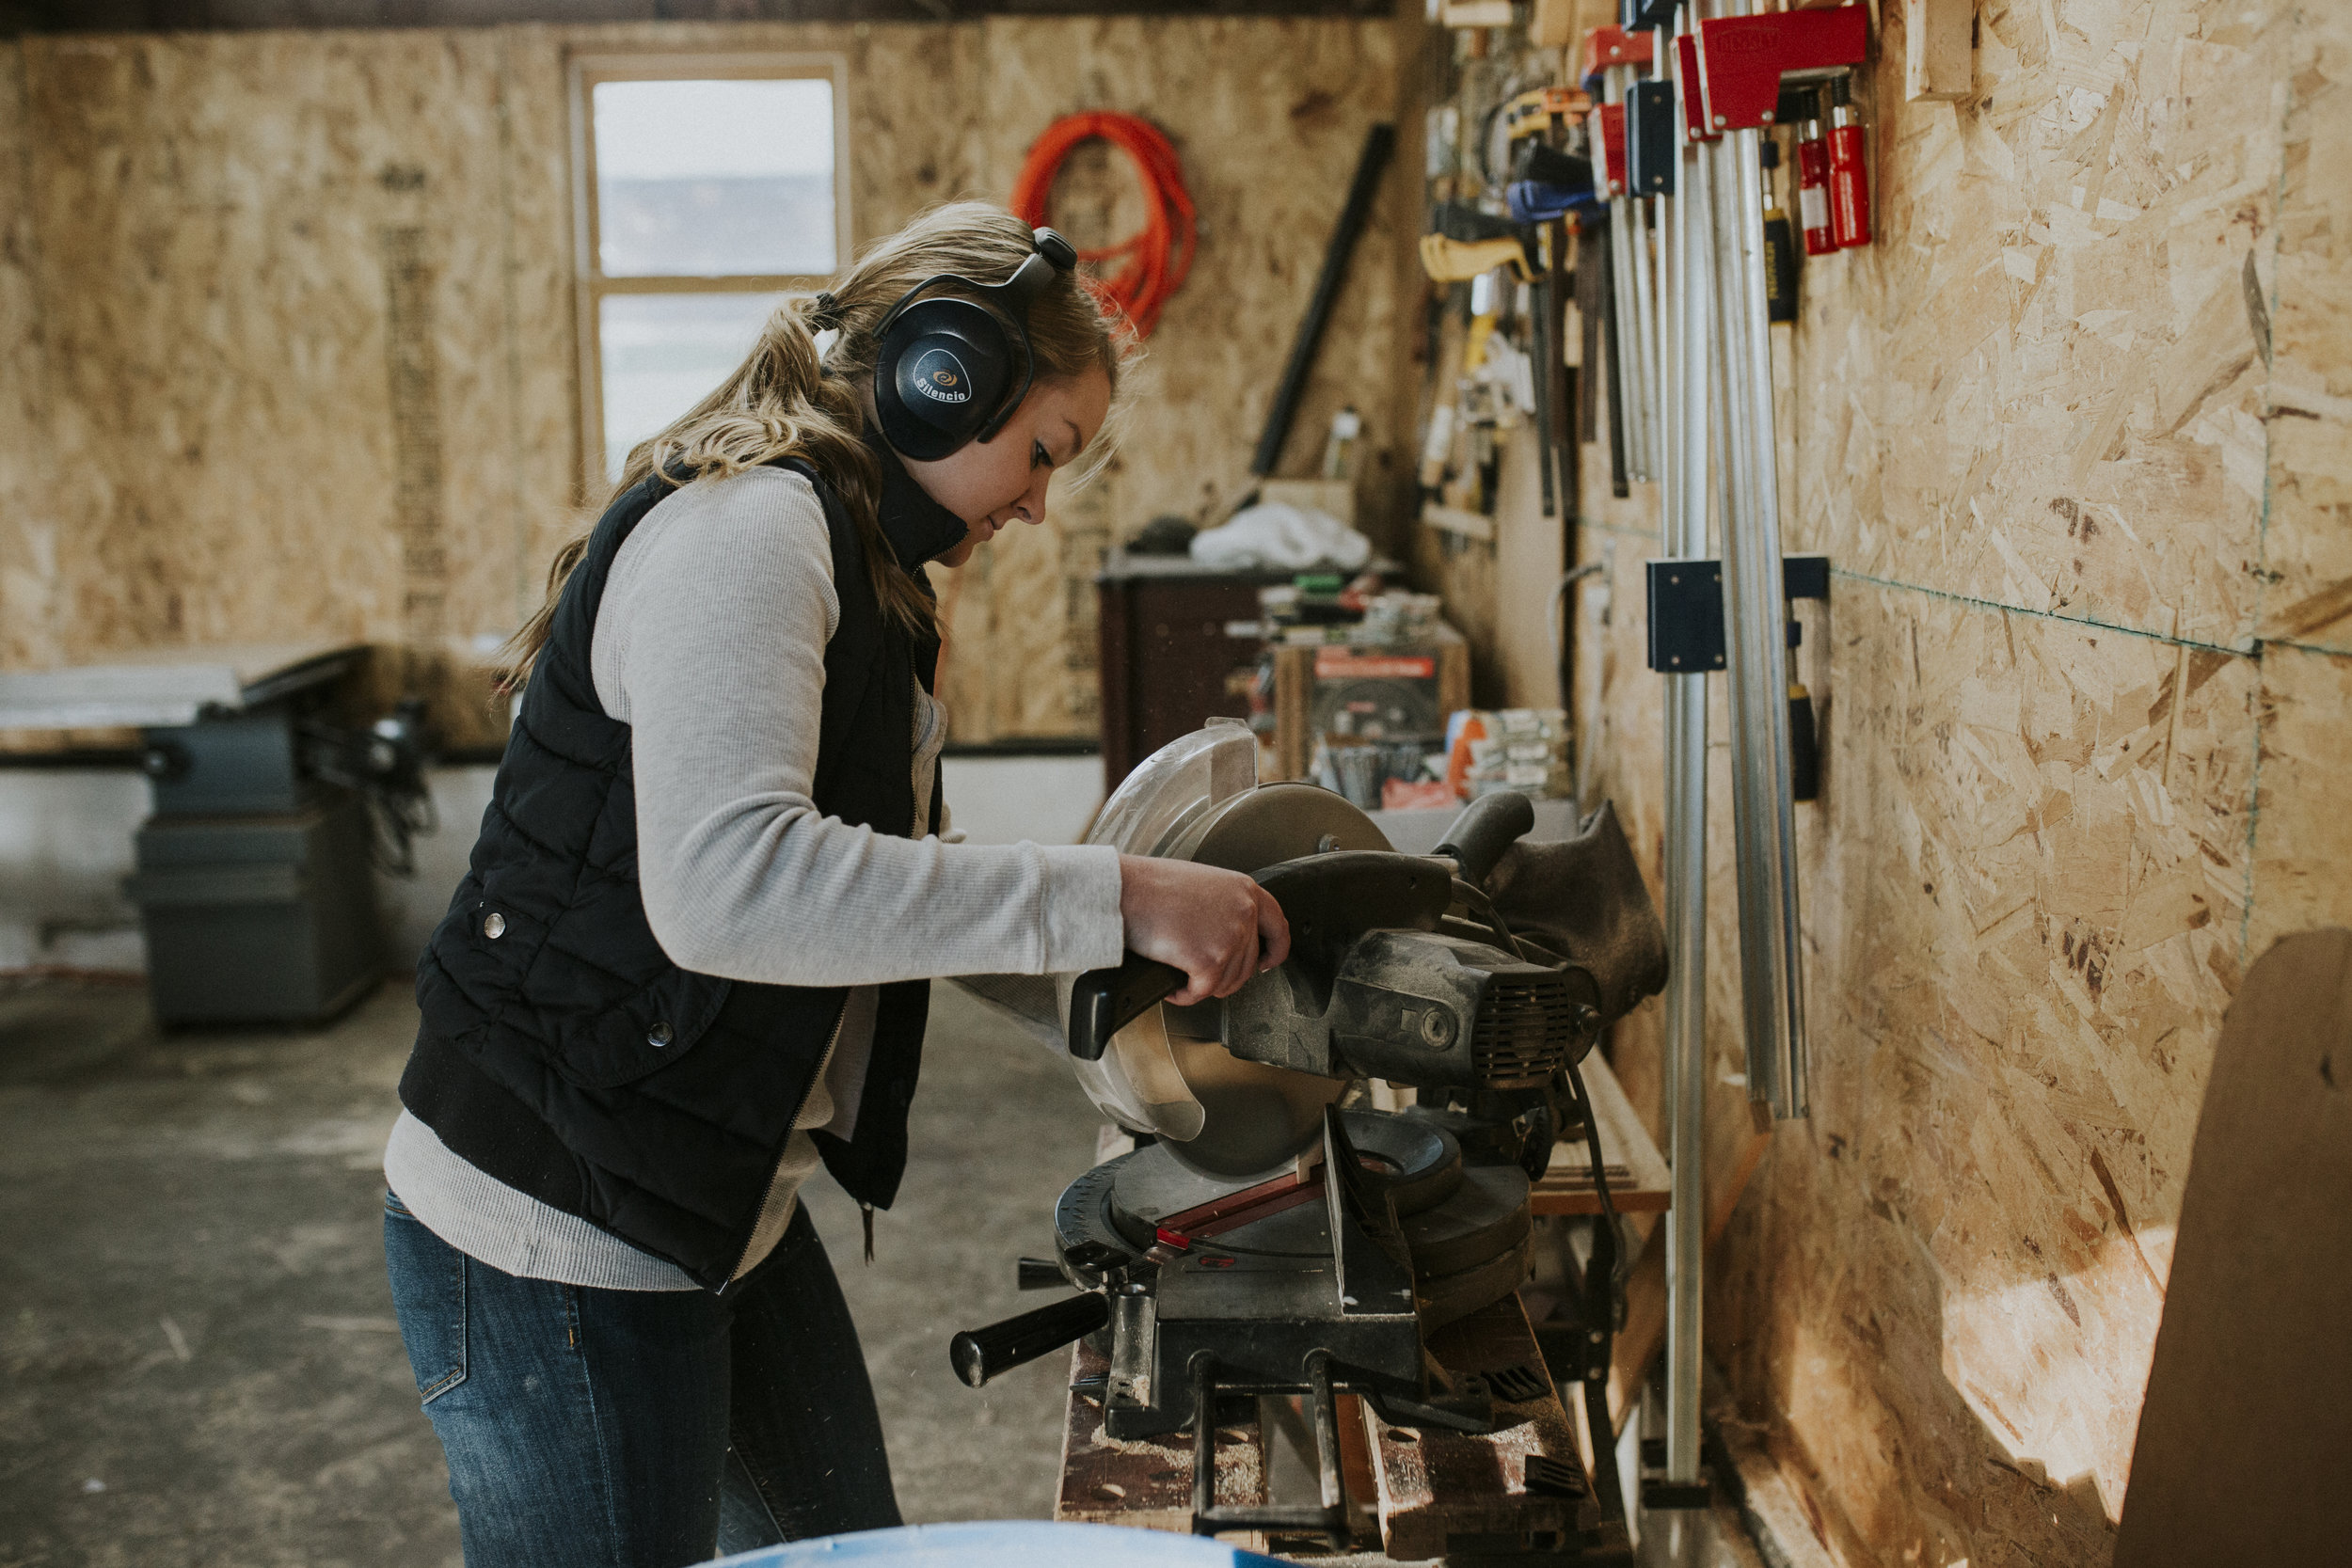 what it's like being a woman woodworker - the victories and struggles